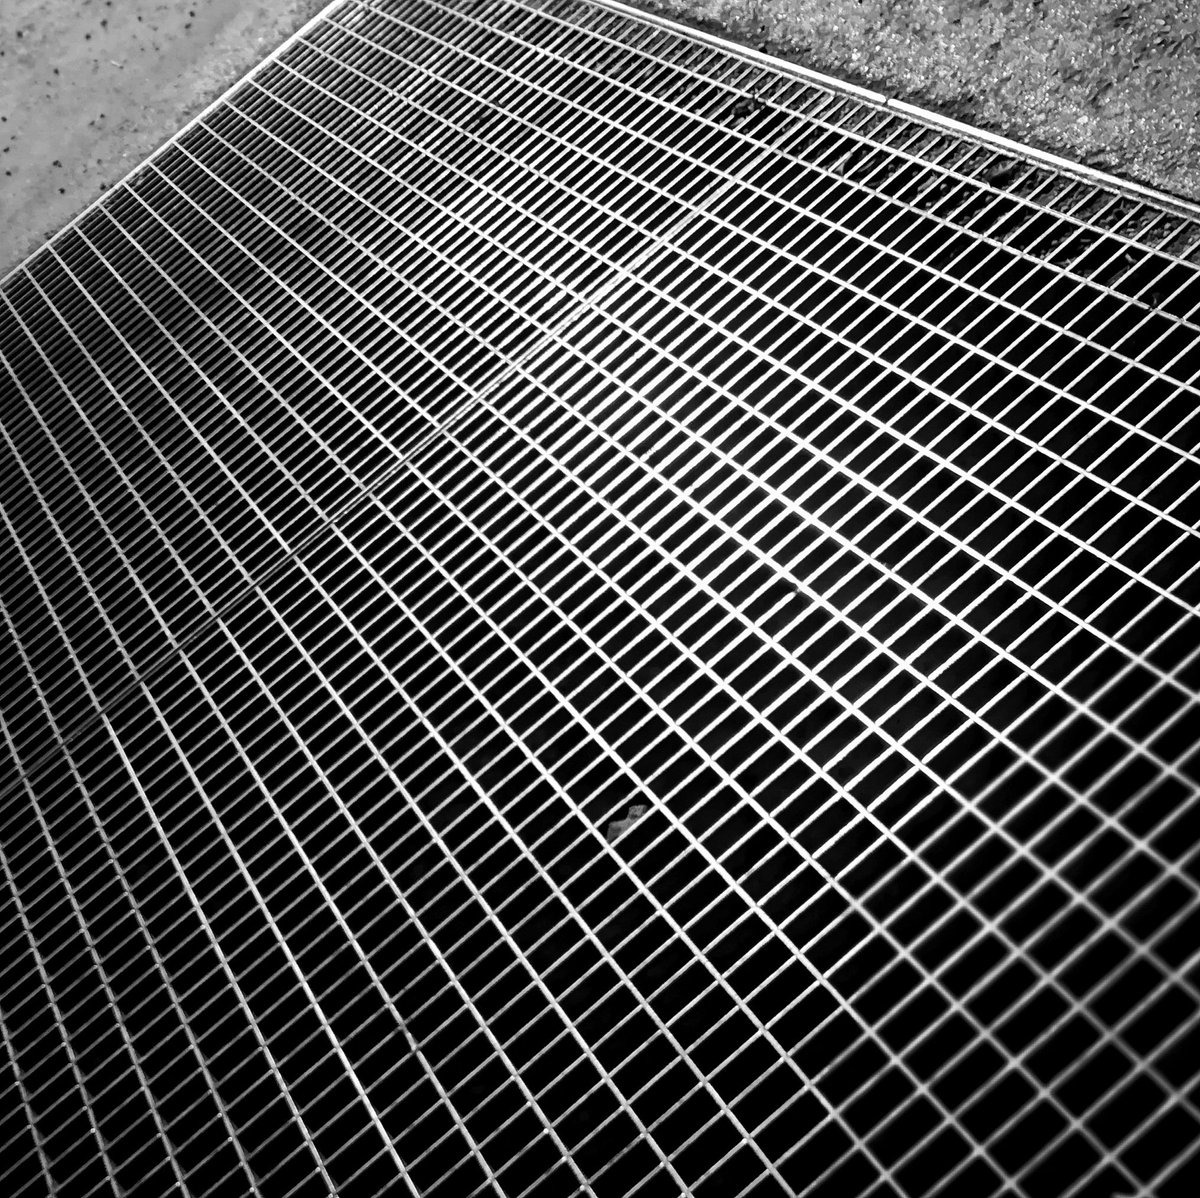 RT @AG_Exposed: #Light on the #Grid  #blackandwhitephotography https://t.co/5XbZ0rbr9M